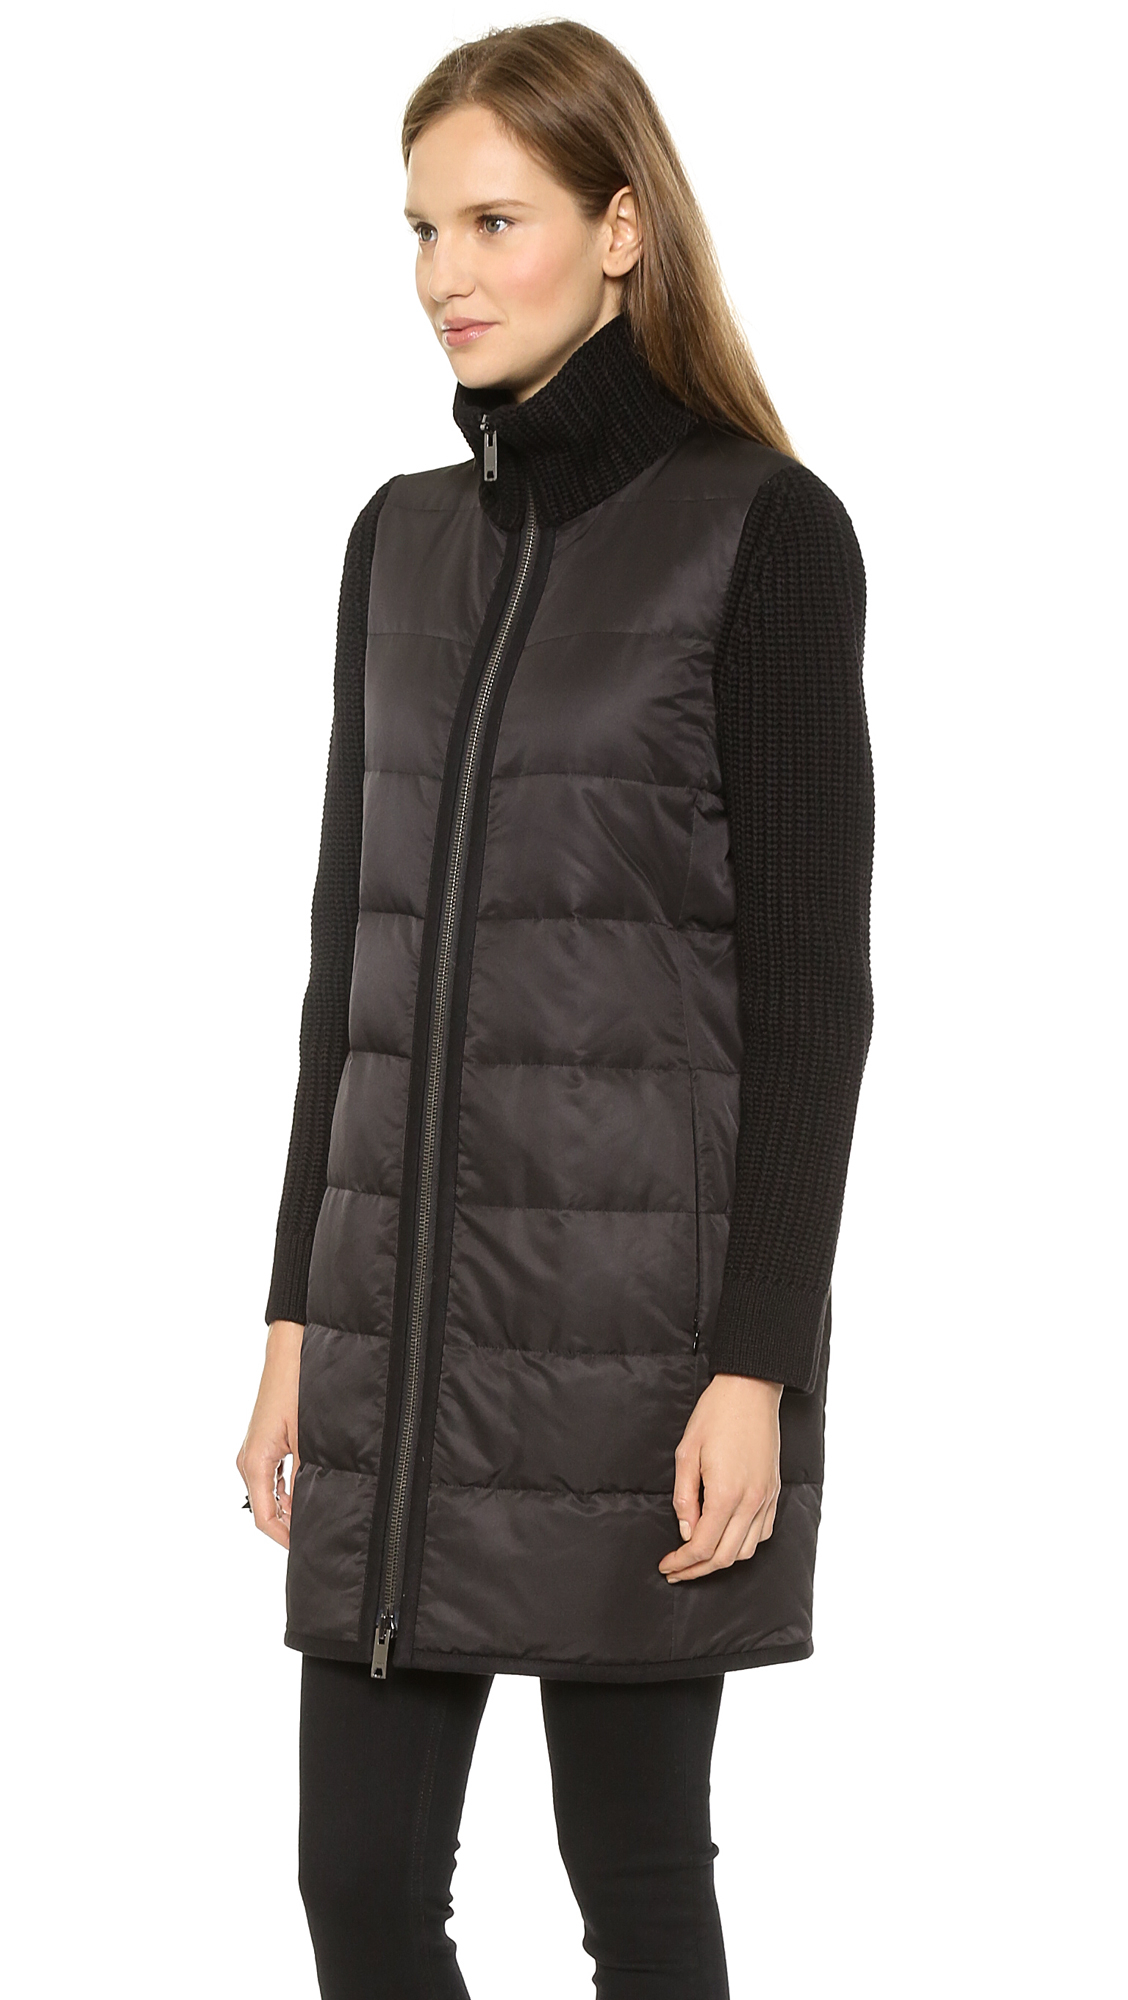 Dkny Puffer Blackblack Coat In Black With Knit Sleeves Lyst zwFpqHF